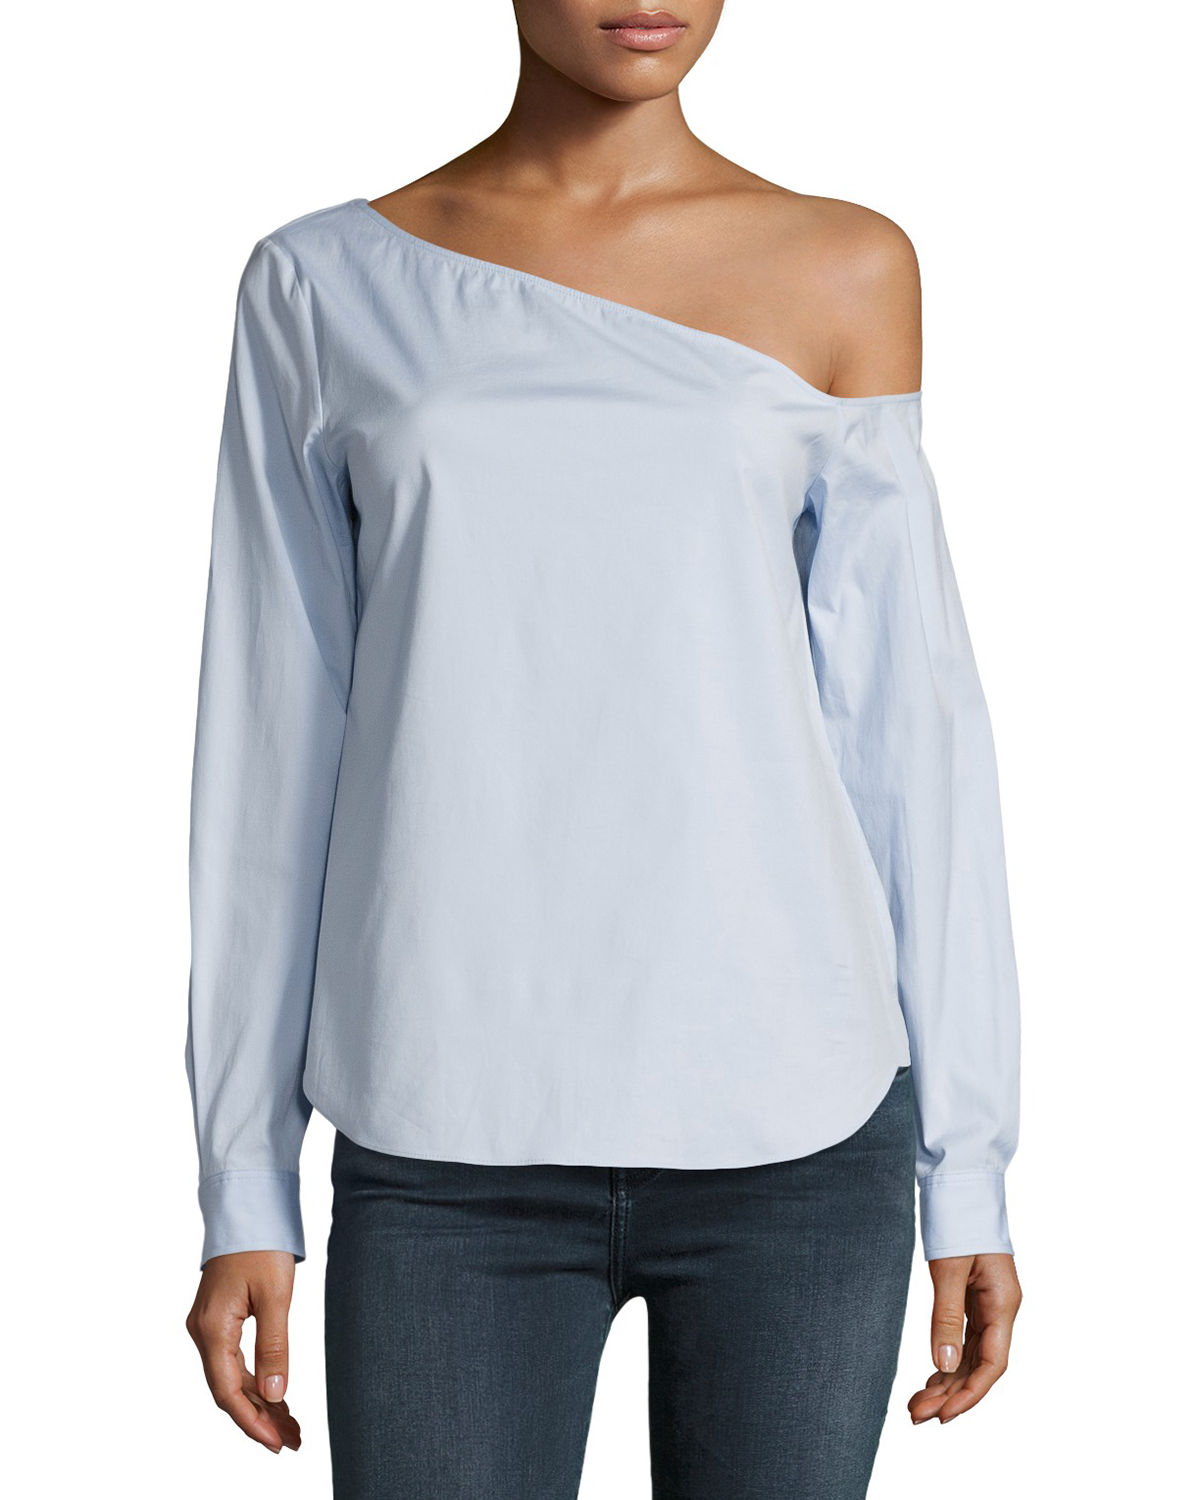 Ulrika One-Shoulder Top